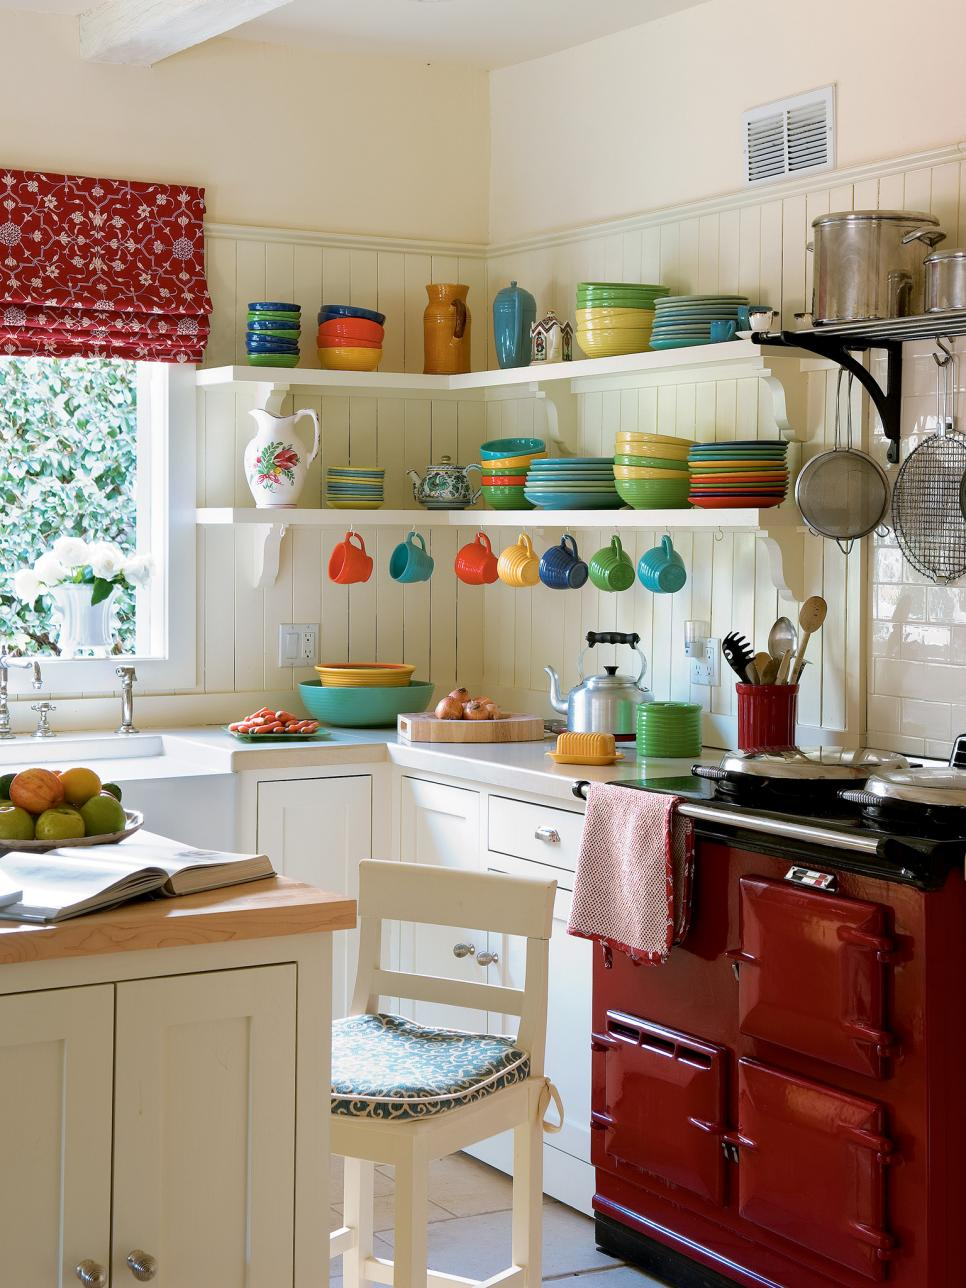 Pictures Of Small Kitchen Design Ideas From HGTV HGTV - Design ideas for small kitchen spaces